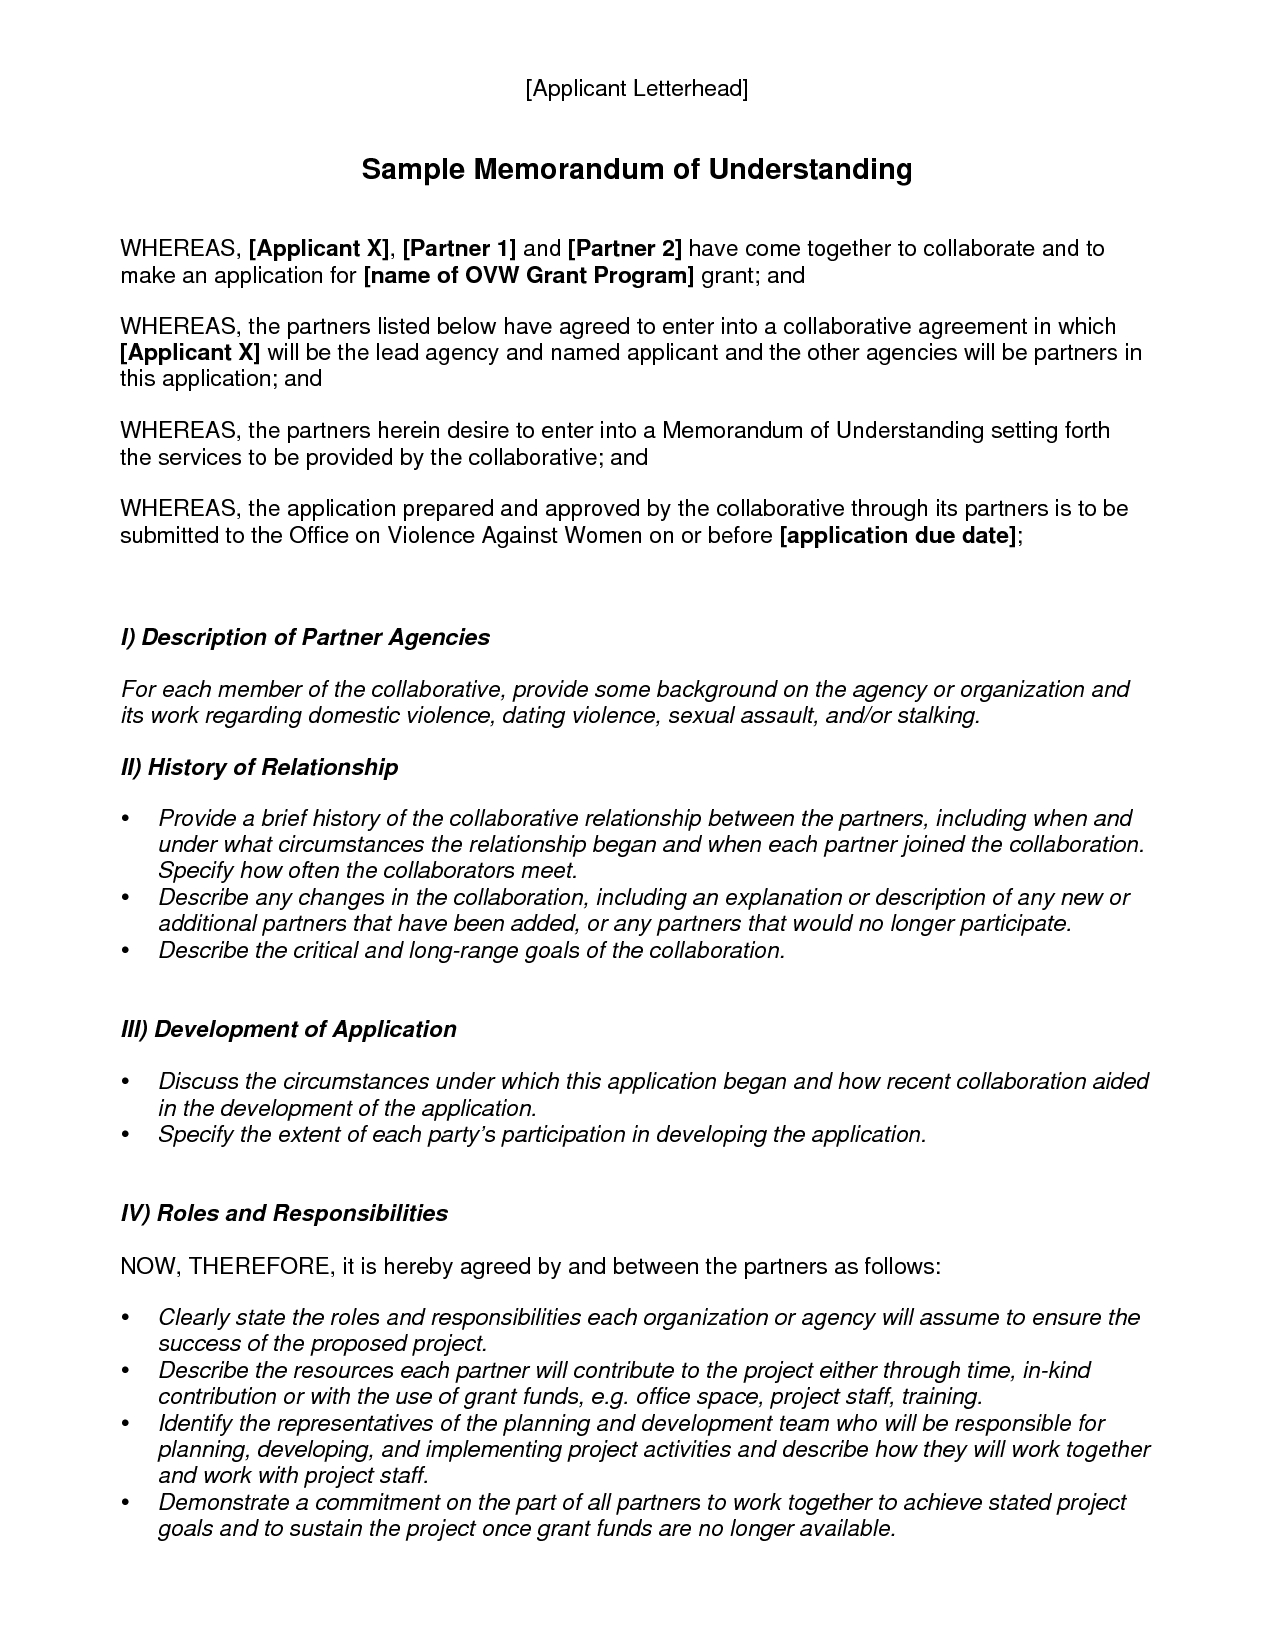 Memorandum Of Understanding Template | Best Template Collection throughout Memorandum Of Understanding Format 22975